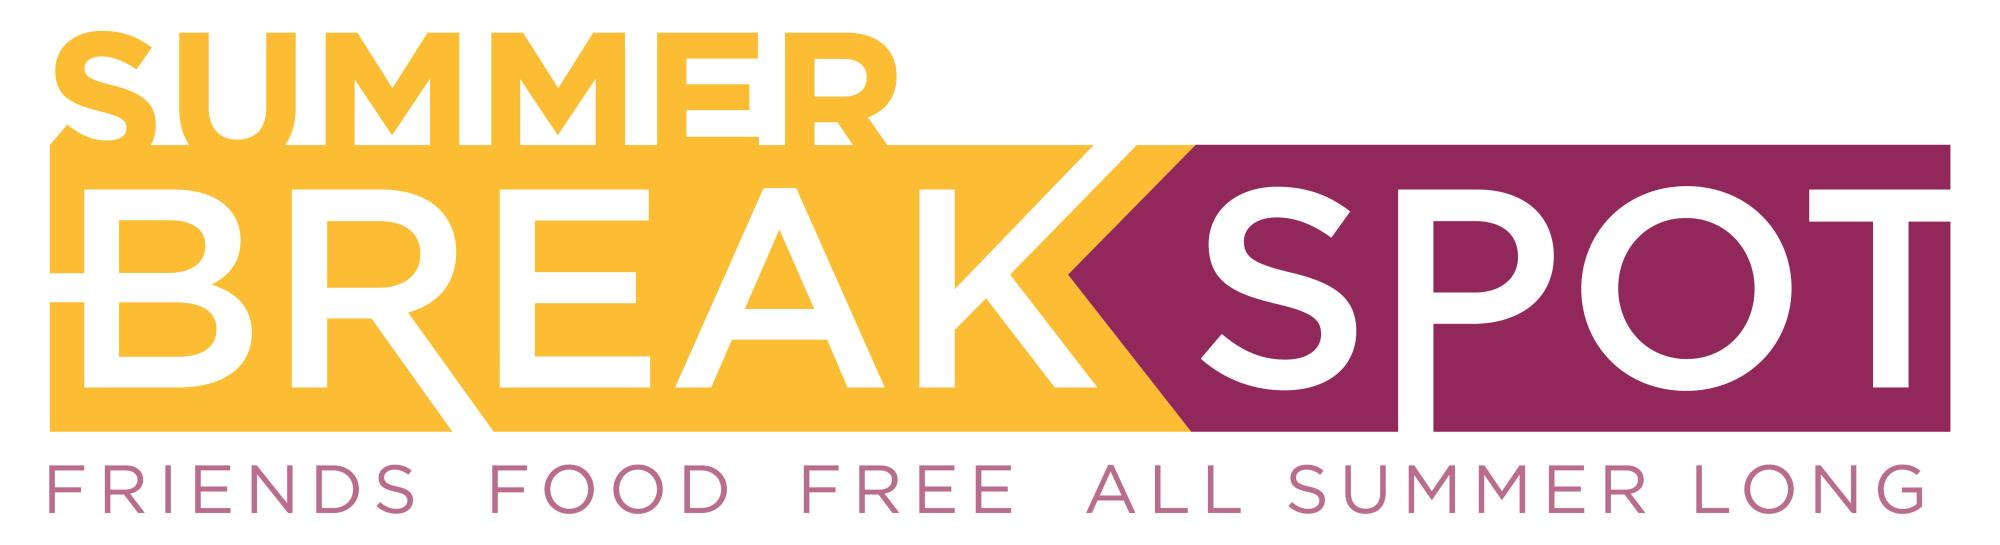 Summer BreakSpot Logo